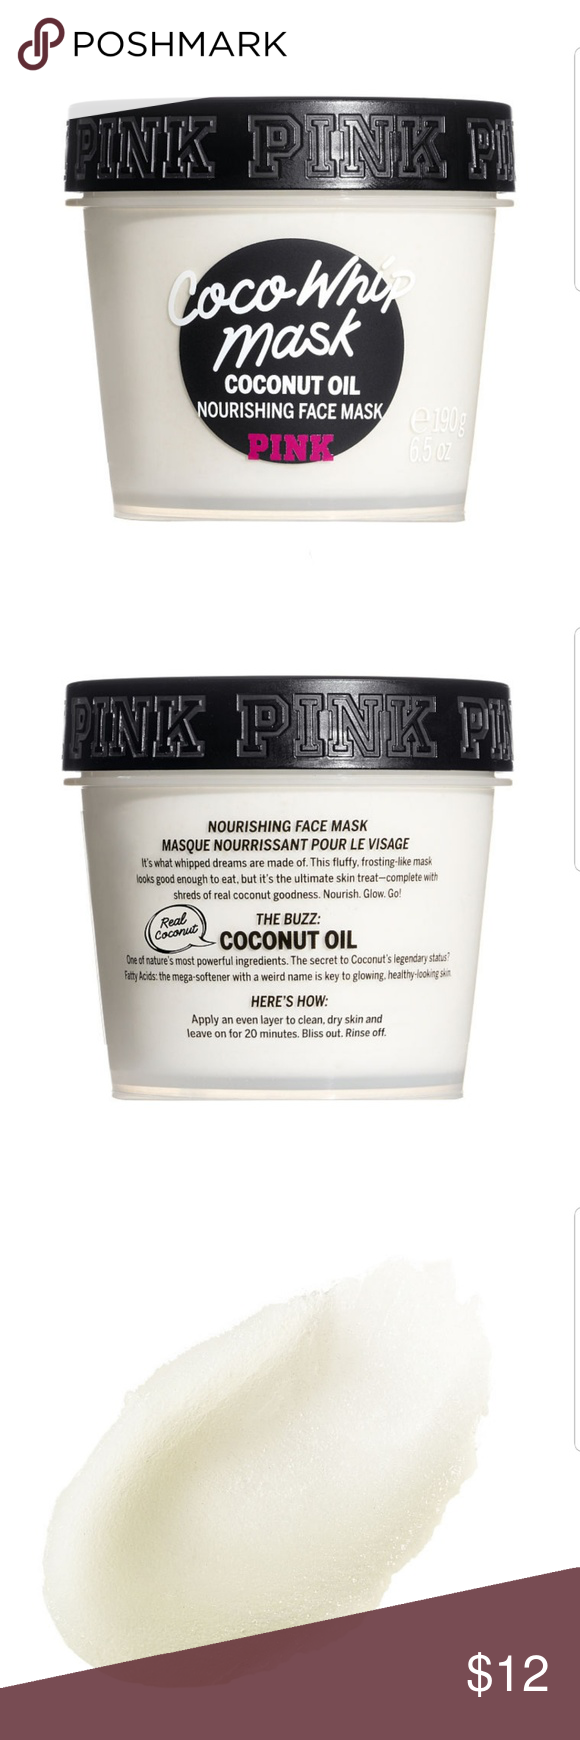 2027db4588061 Victoria's Secret PINK Beauty Coco Whip Face Mask! Brand new in ...